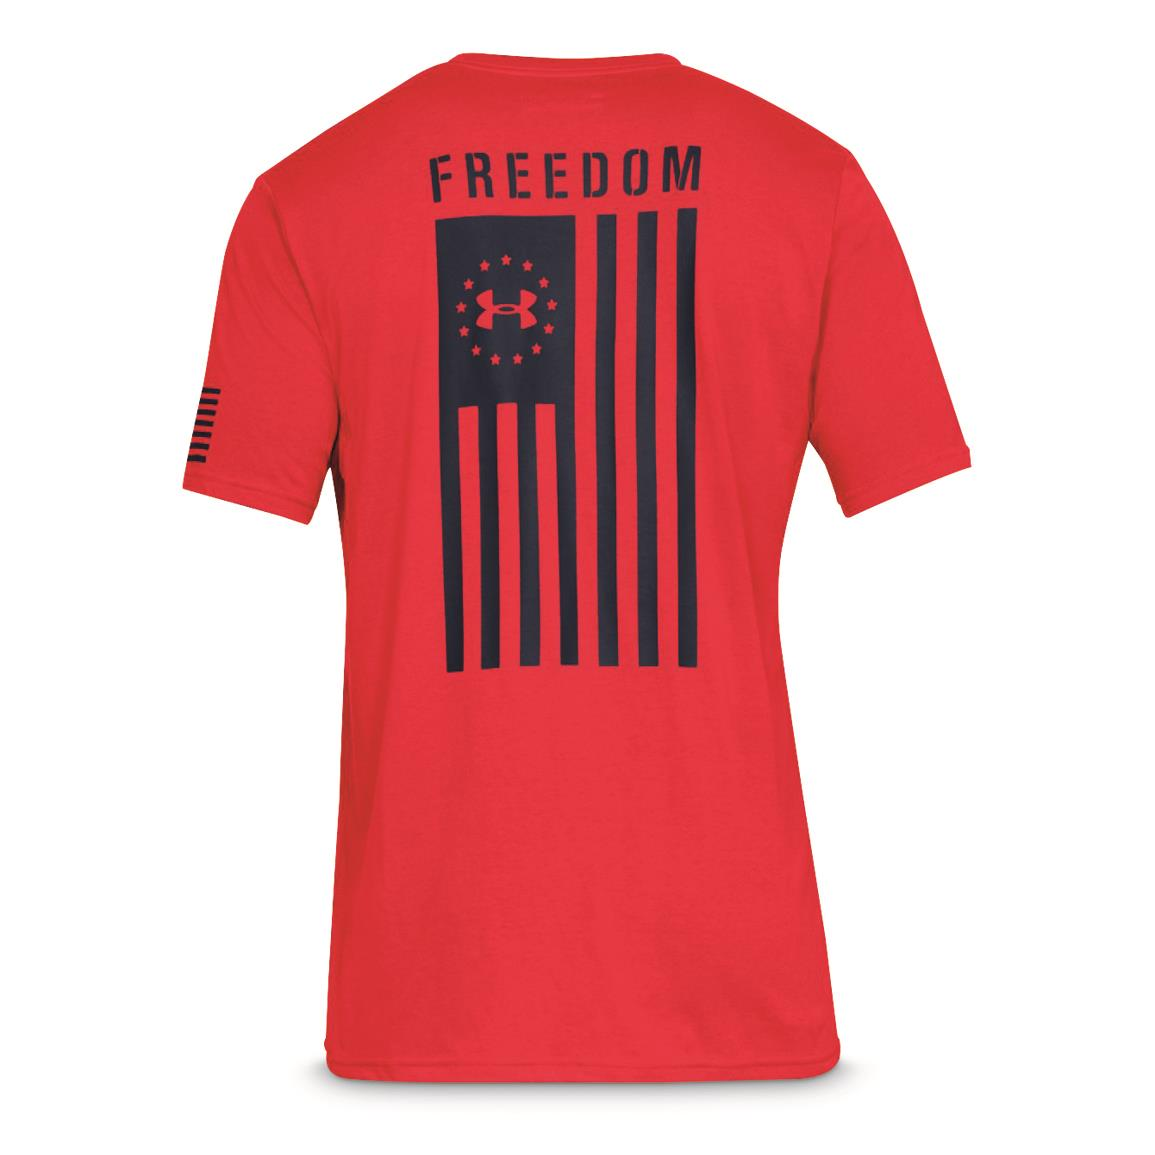 Under Armour Men's Freedom Flag Short Sleeve Shirt, Red/academy